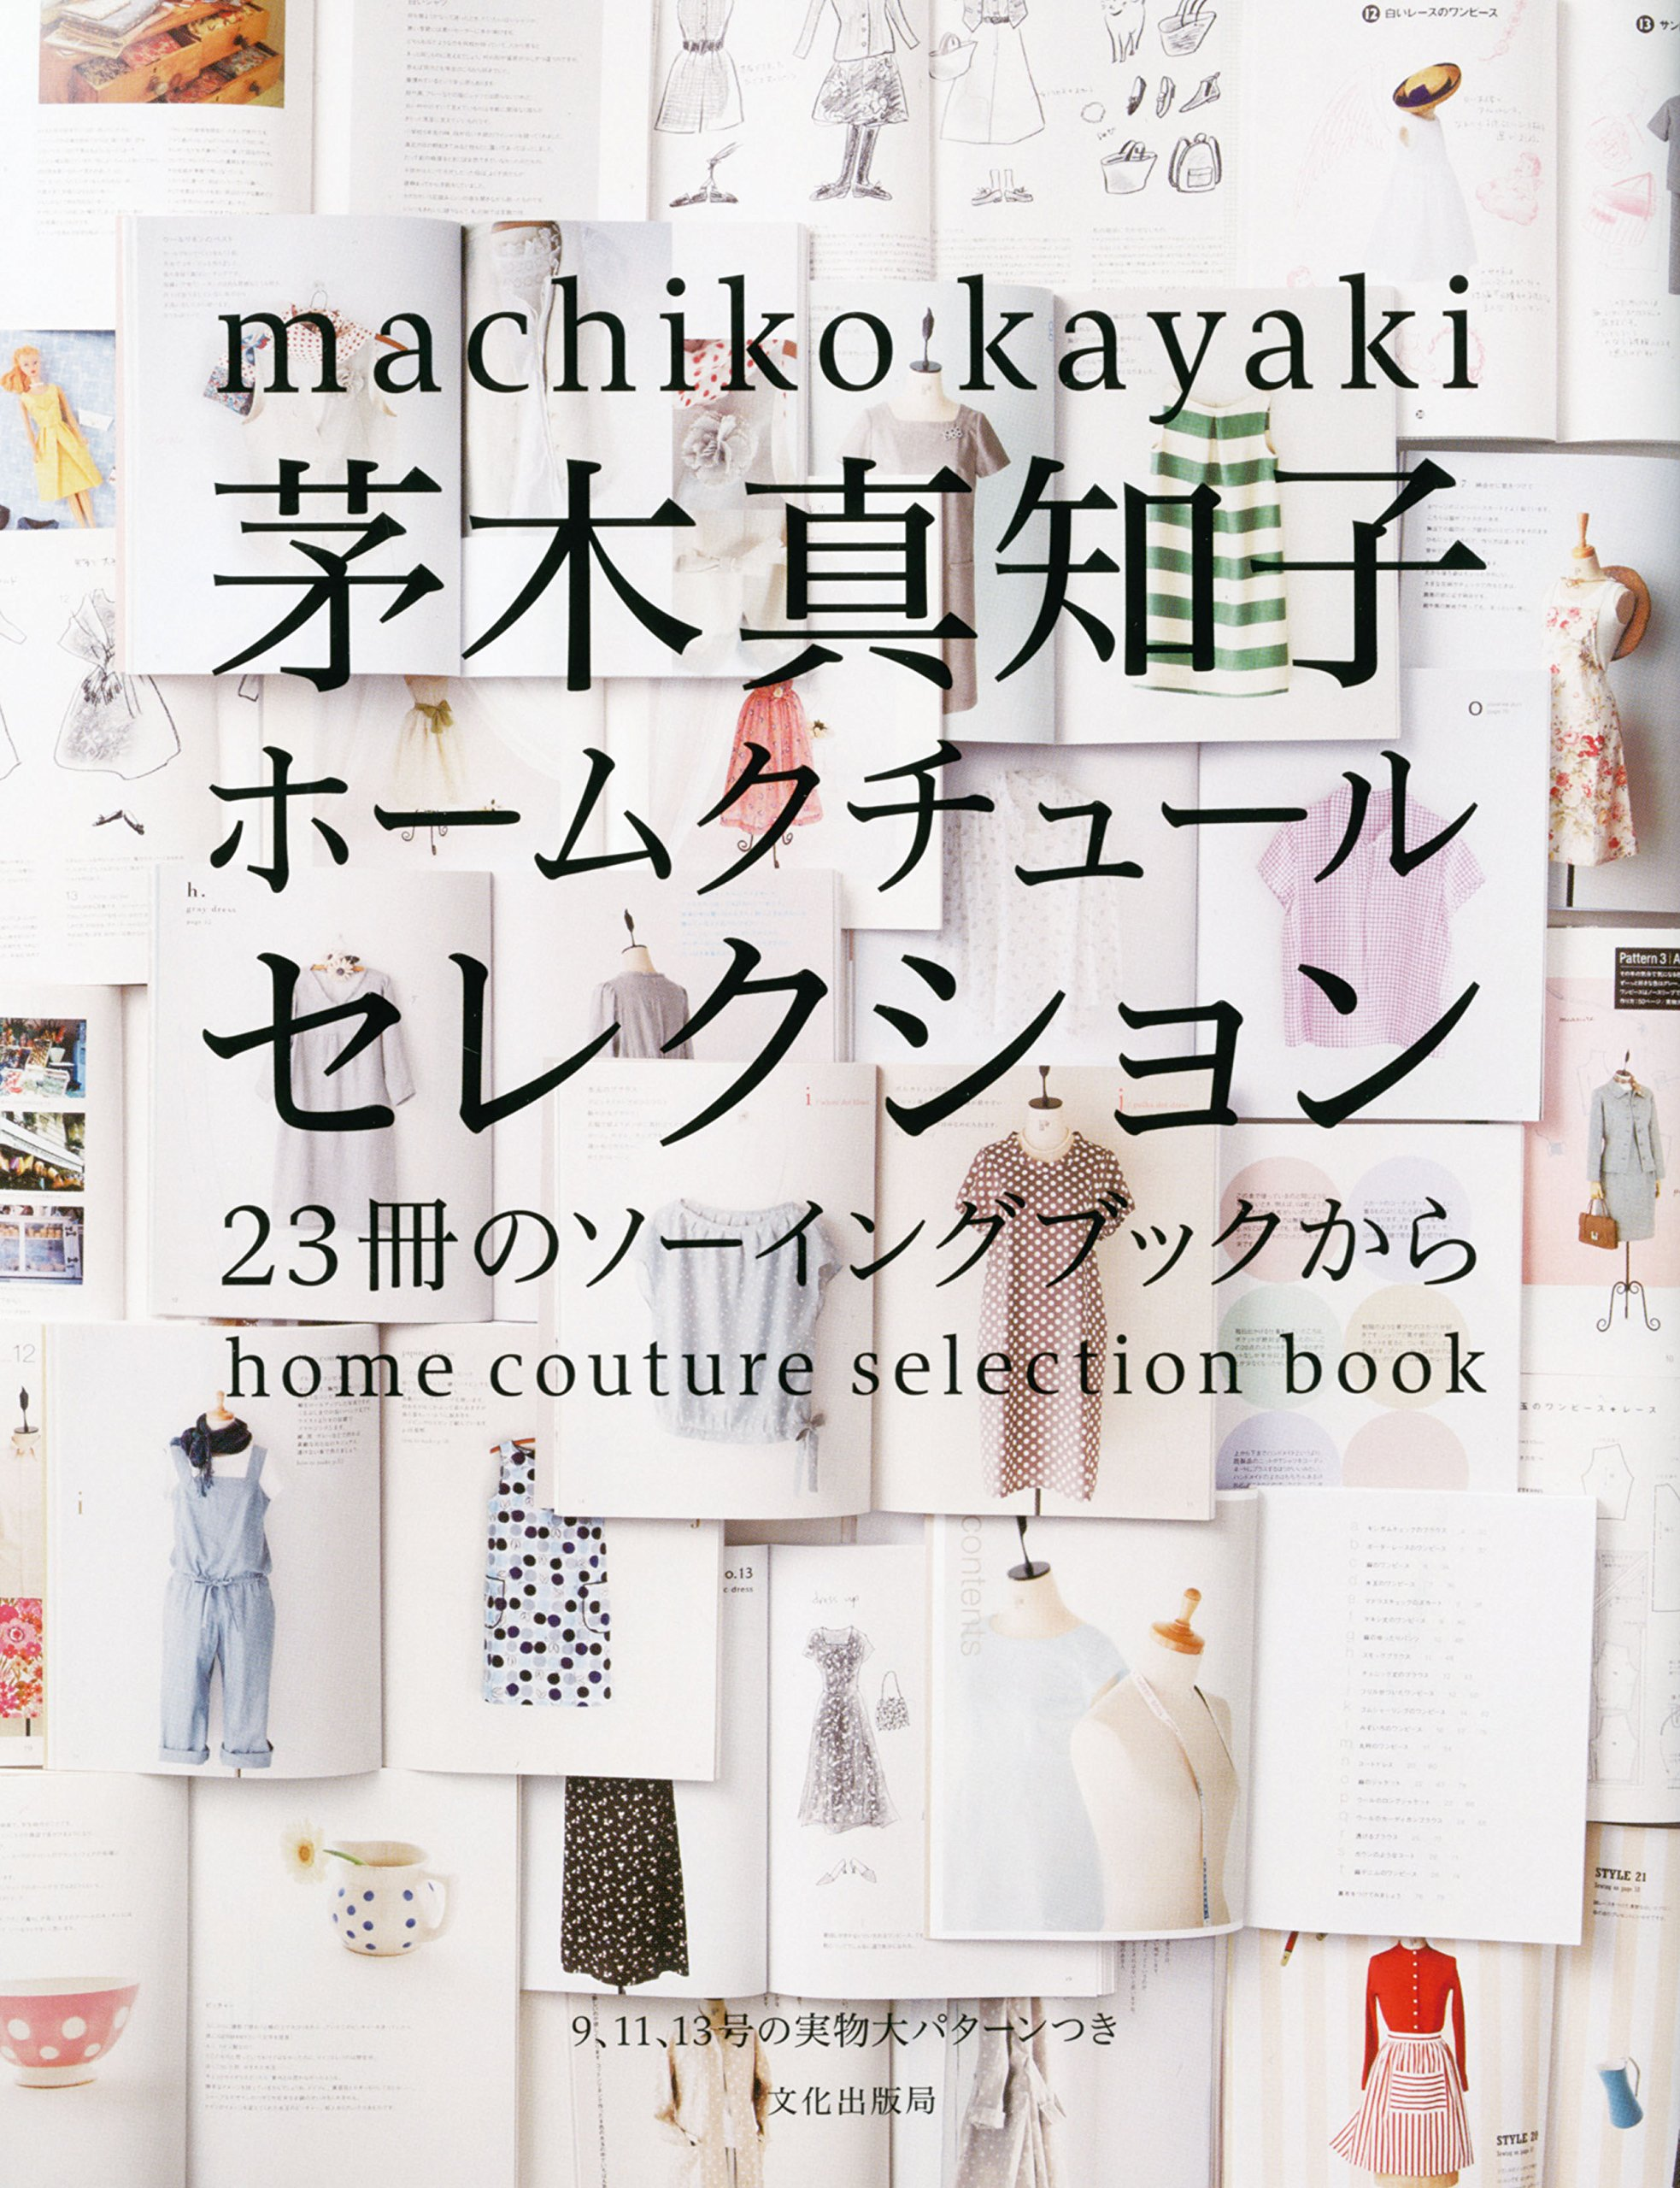 Kayaki Machiko Home couture selection sawing book